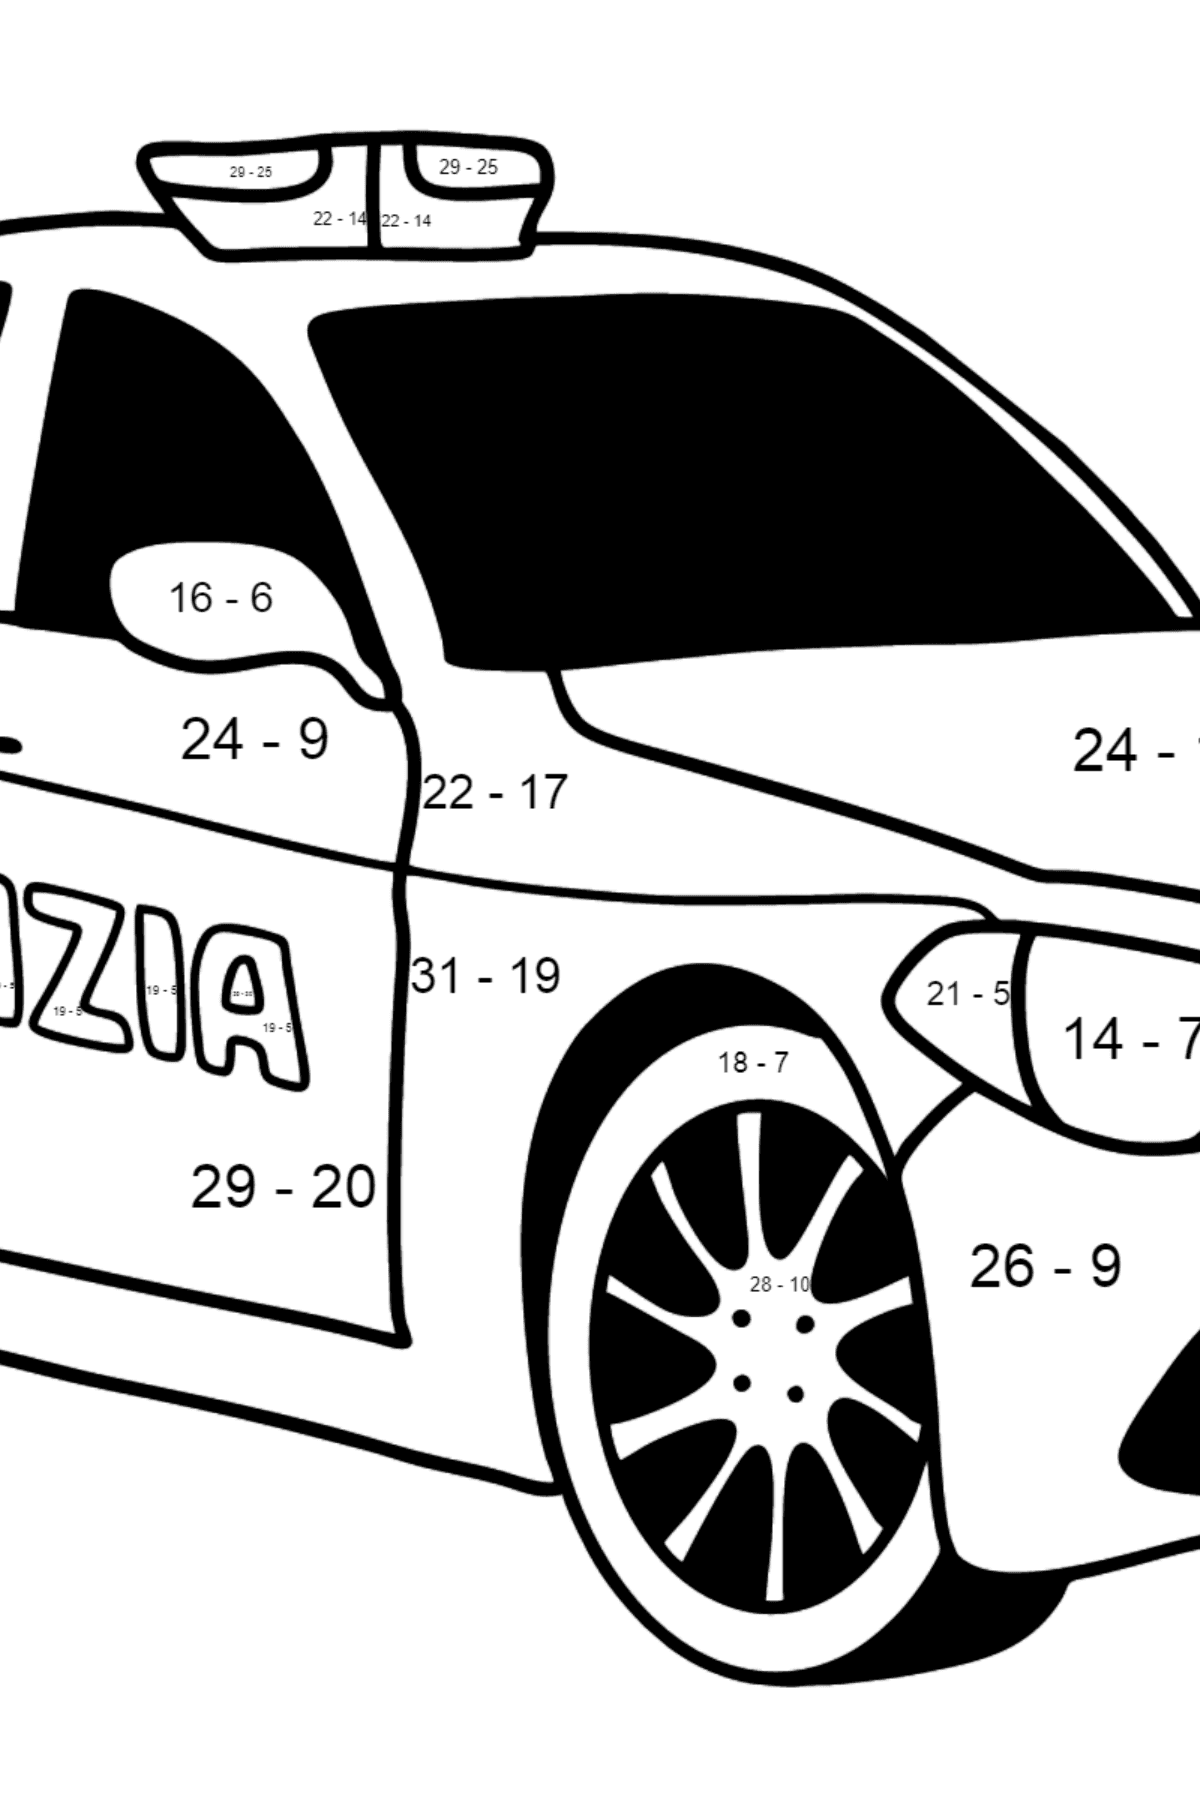 Police Car in Italy coloring page - Math Coloring - Subtraction for Kids